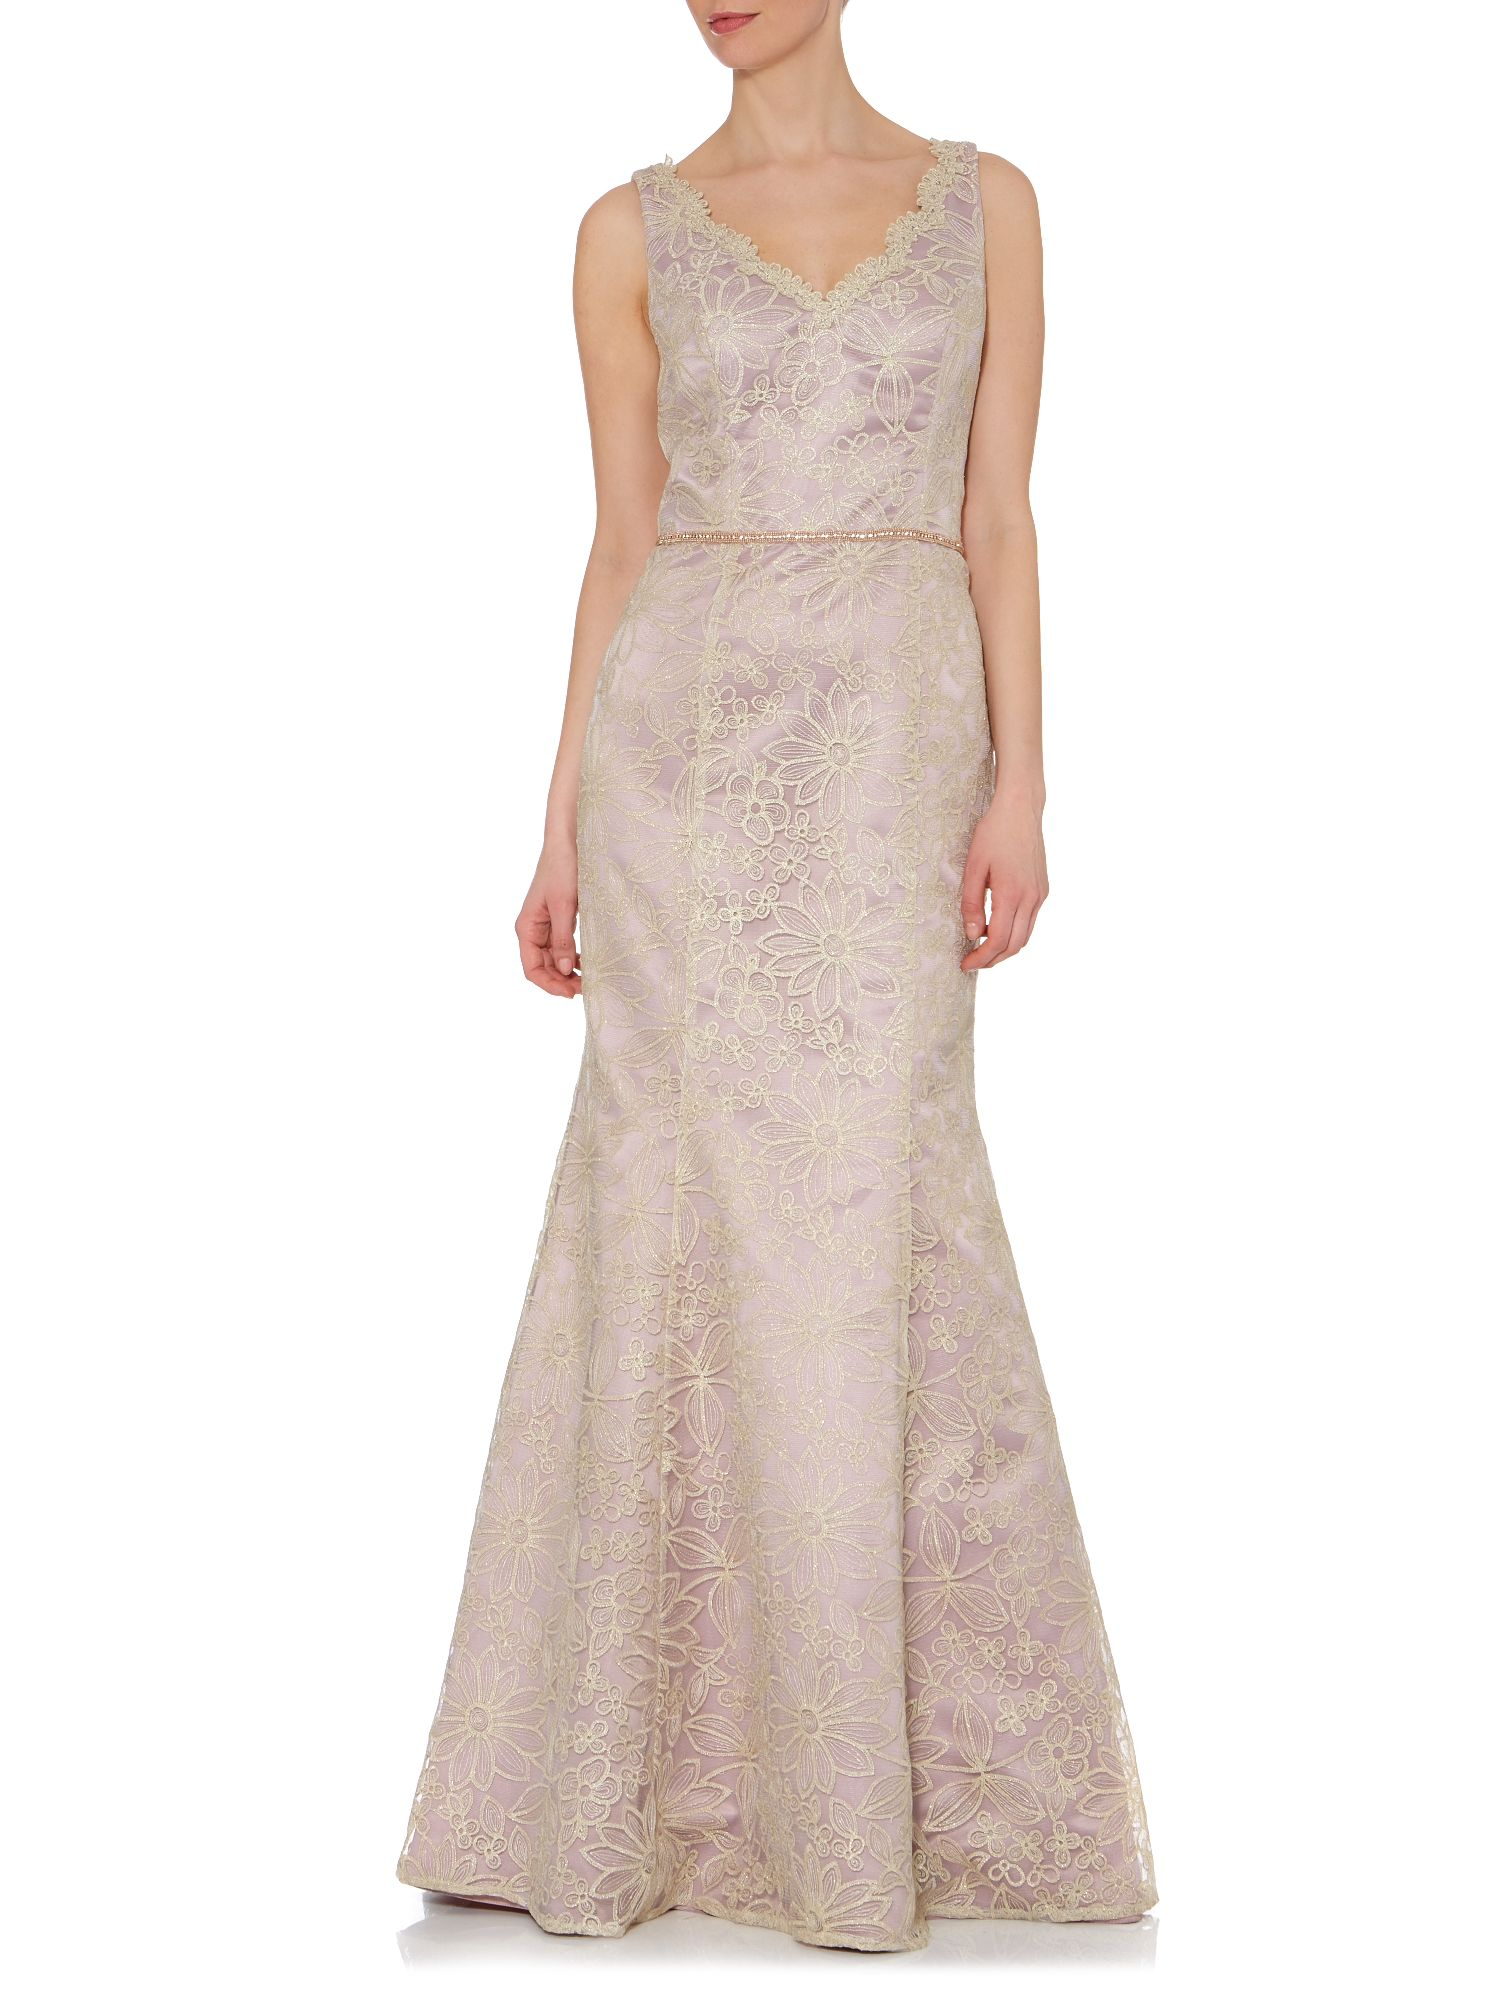 Js collections Daisy Lace Evening Dress in Purple - Lyst